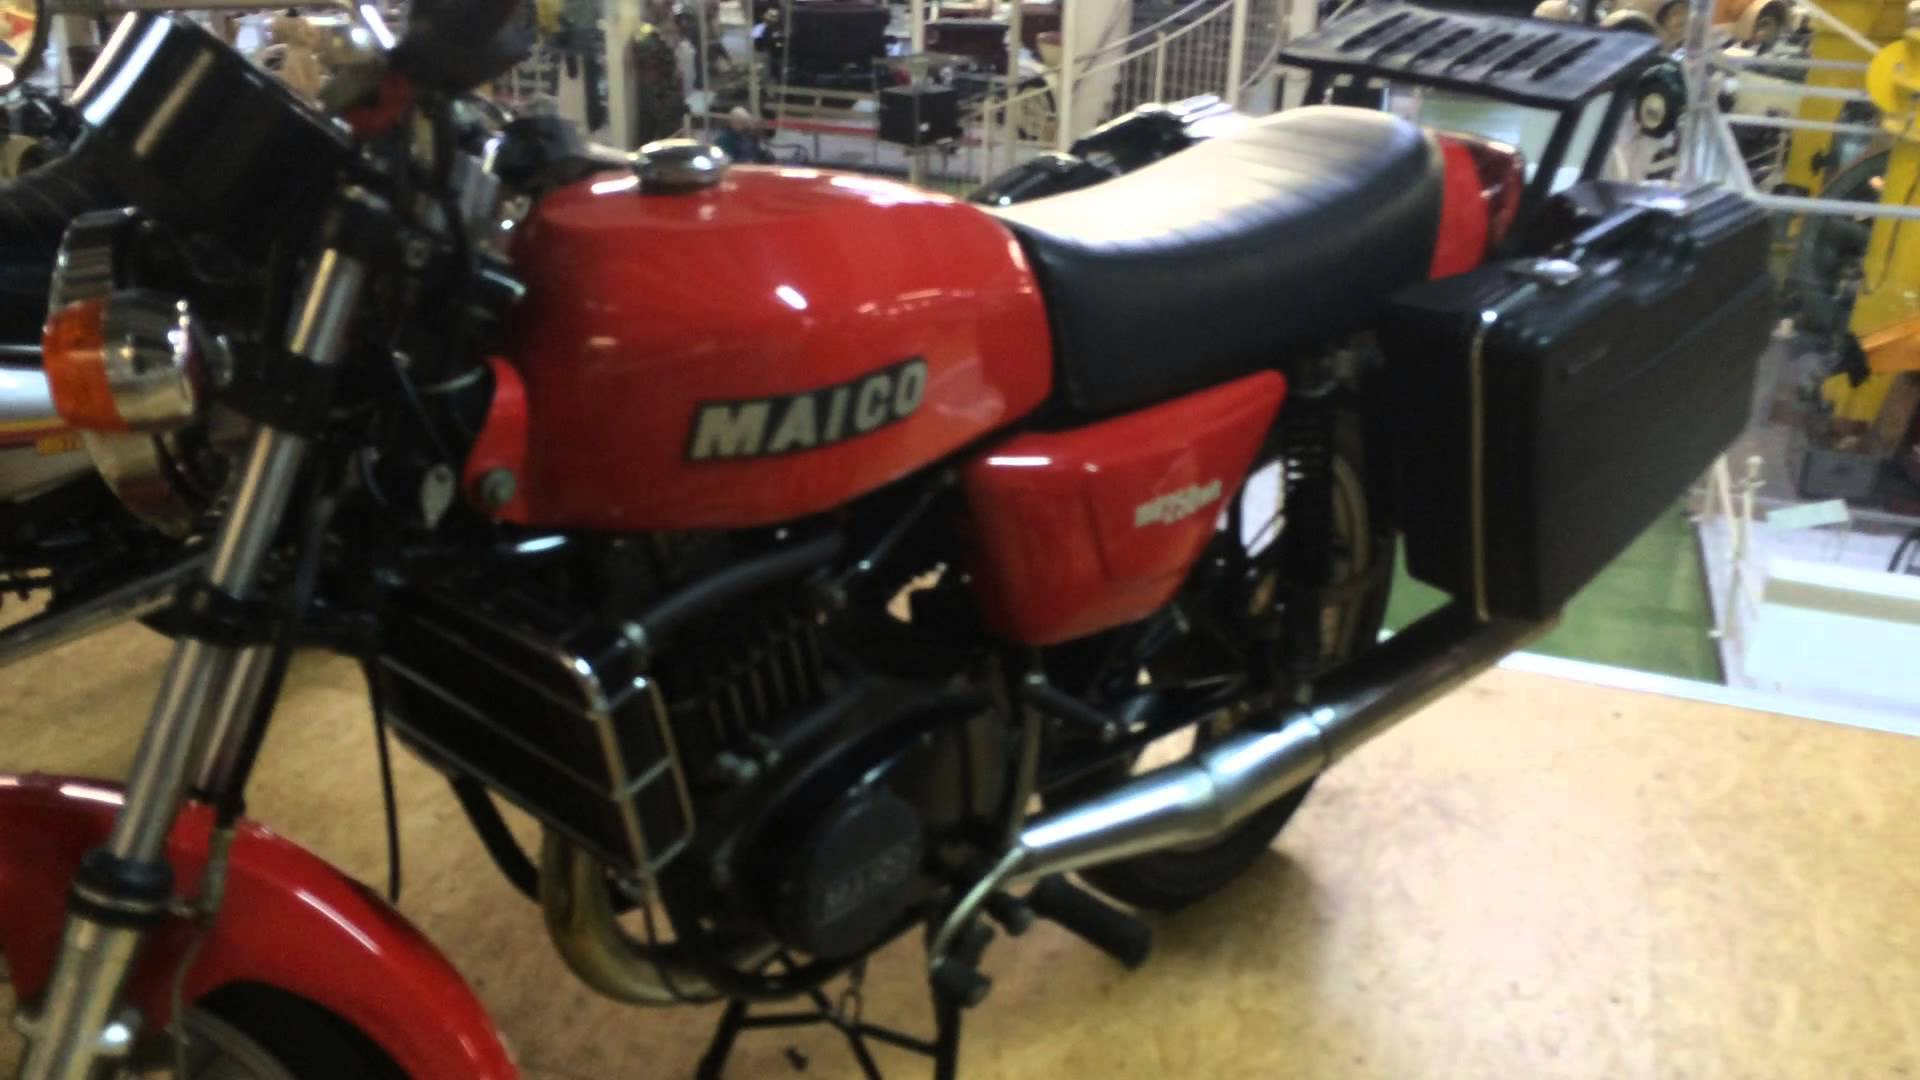 Maico MD 250 WK images #103401